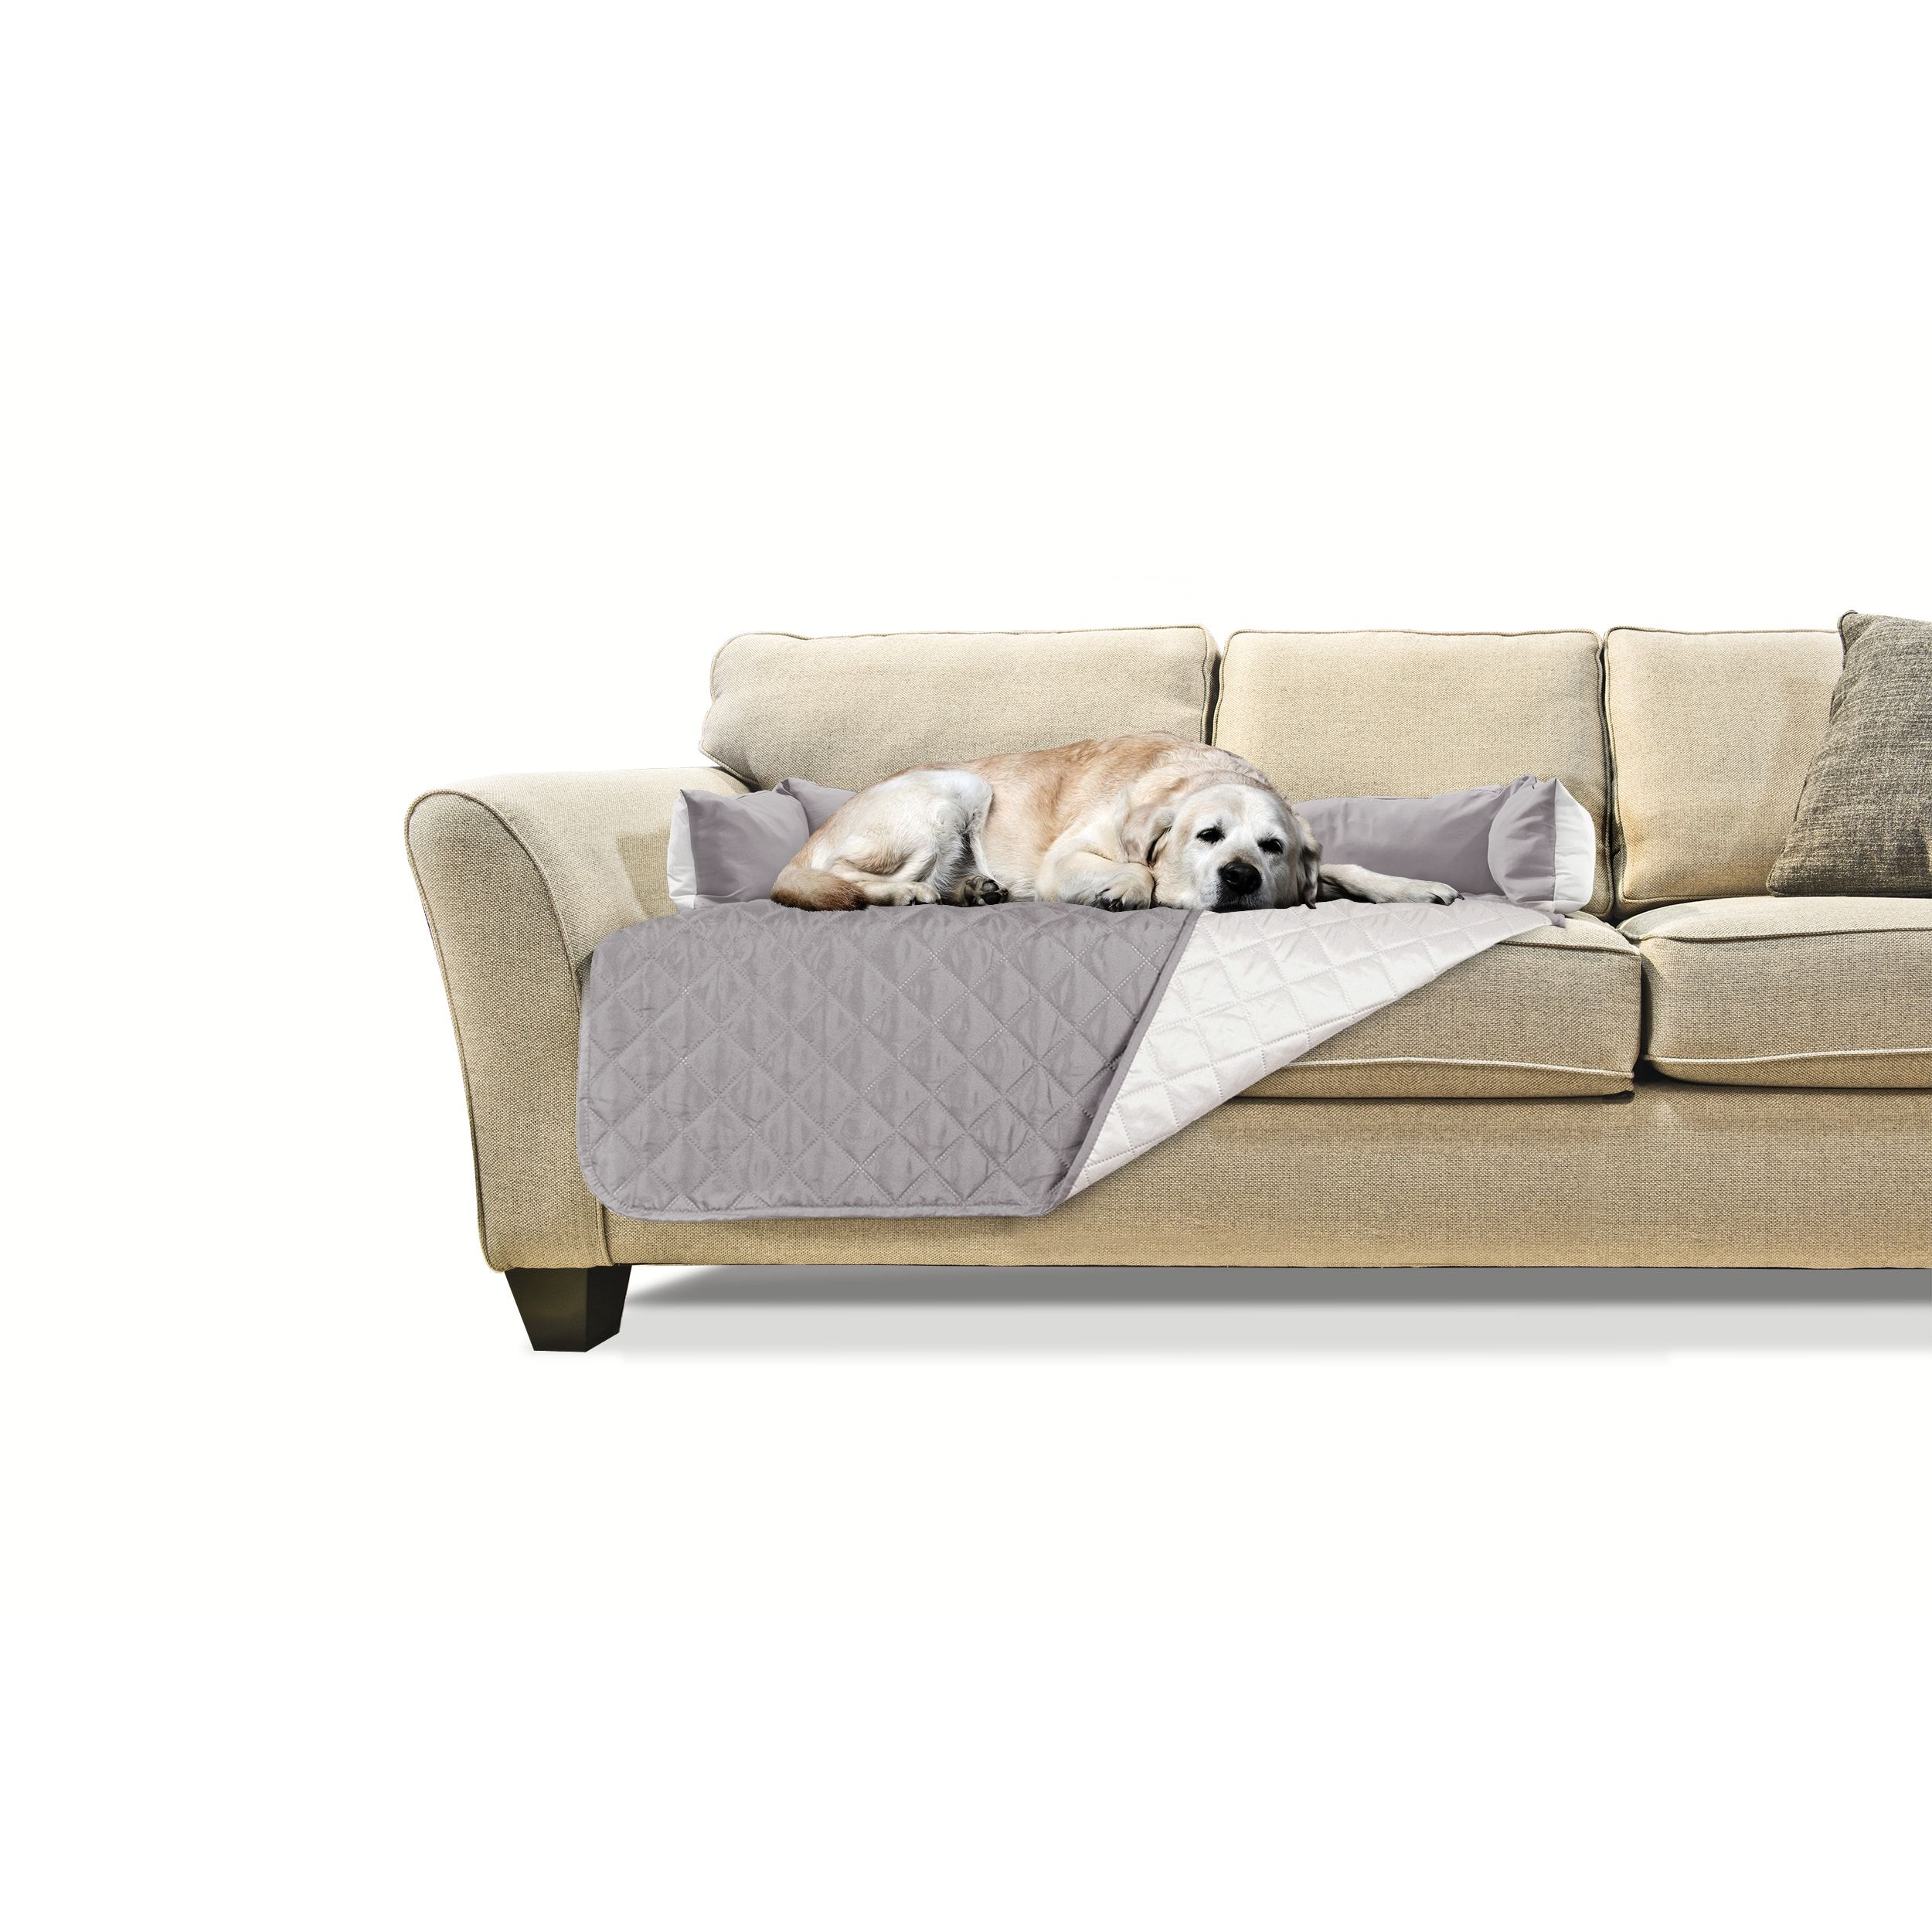 Awesome Furhaven Sofa Buddy Pet Bed Furniture Cover Small Machost Co Dining Chair Design Ideas Machostcouk